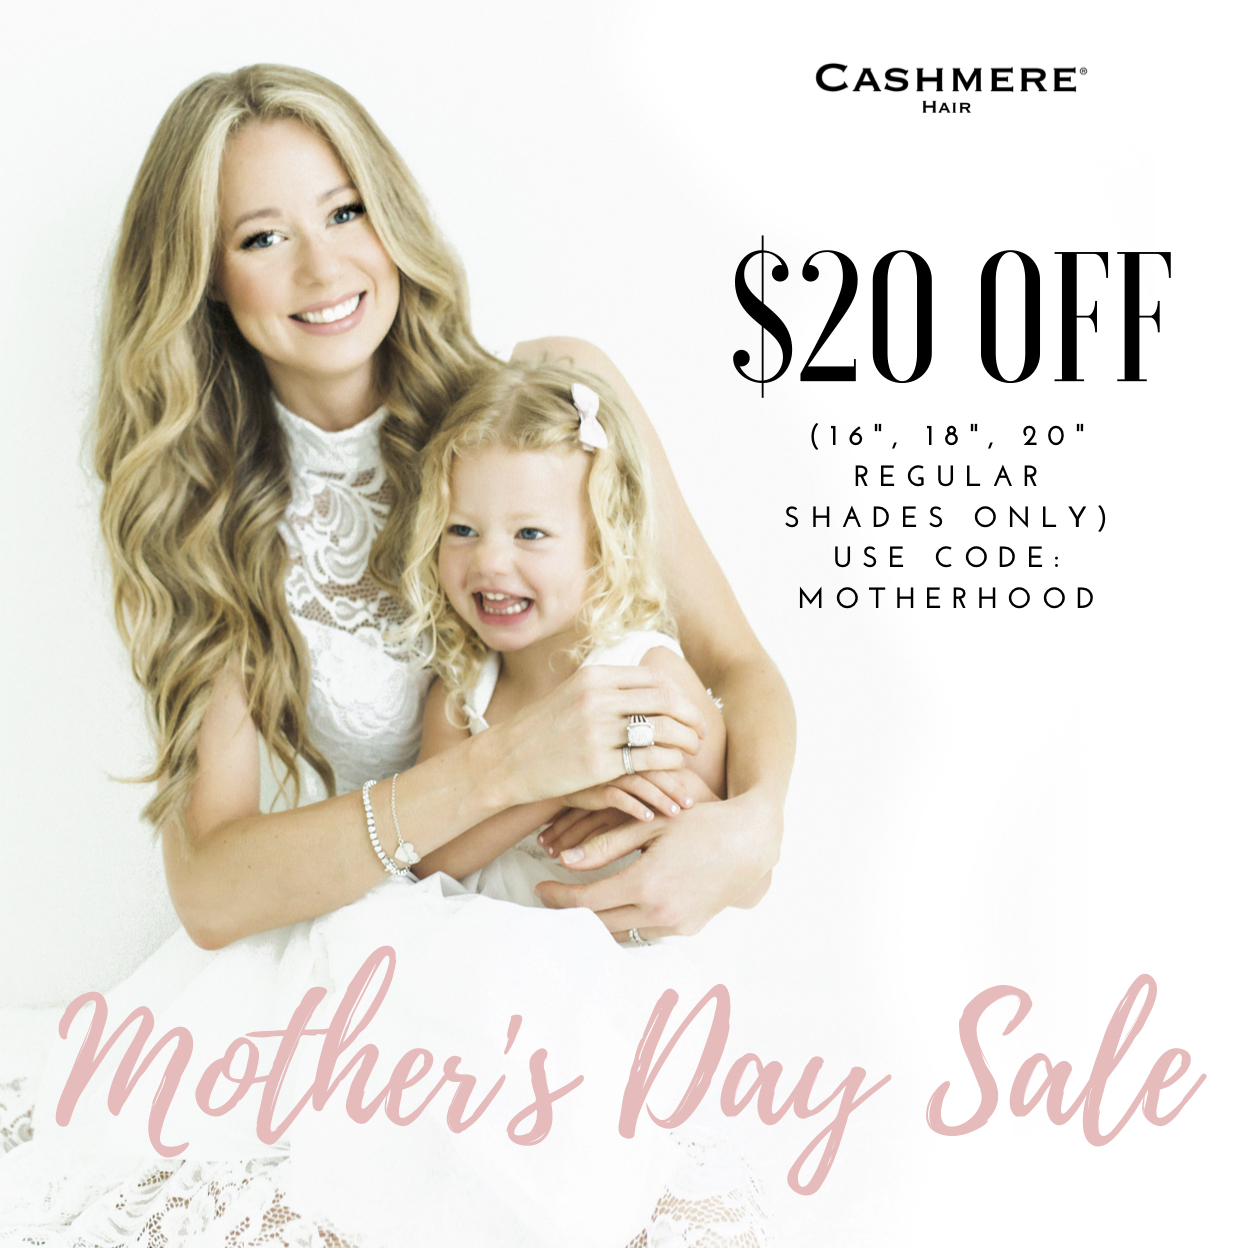 Mothers day sale cashmere hair extensions coupon code promotion promo code